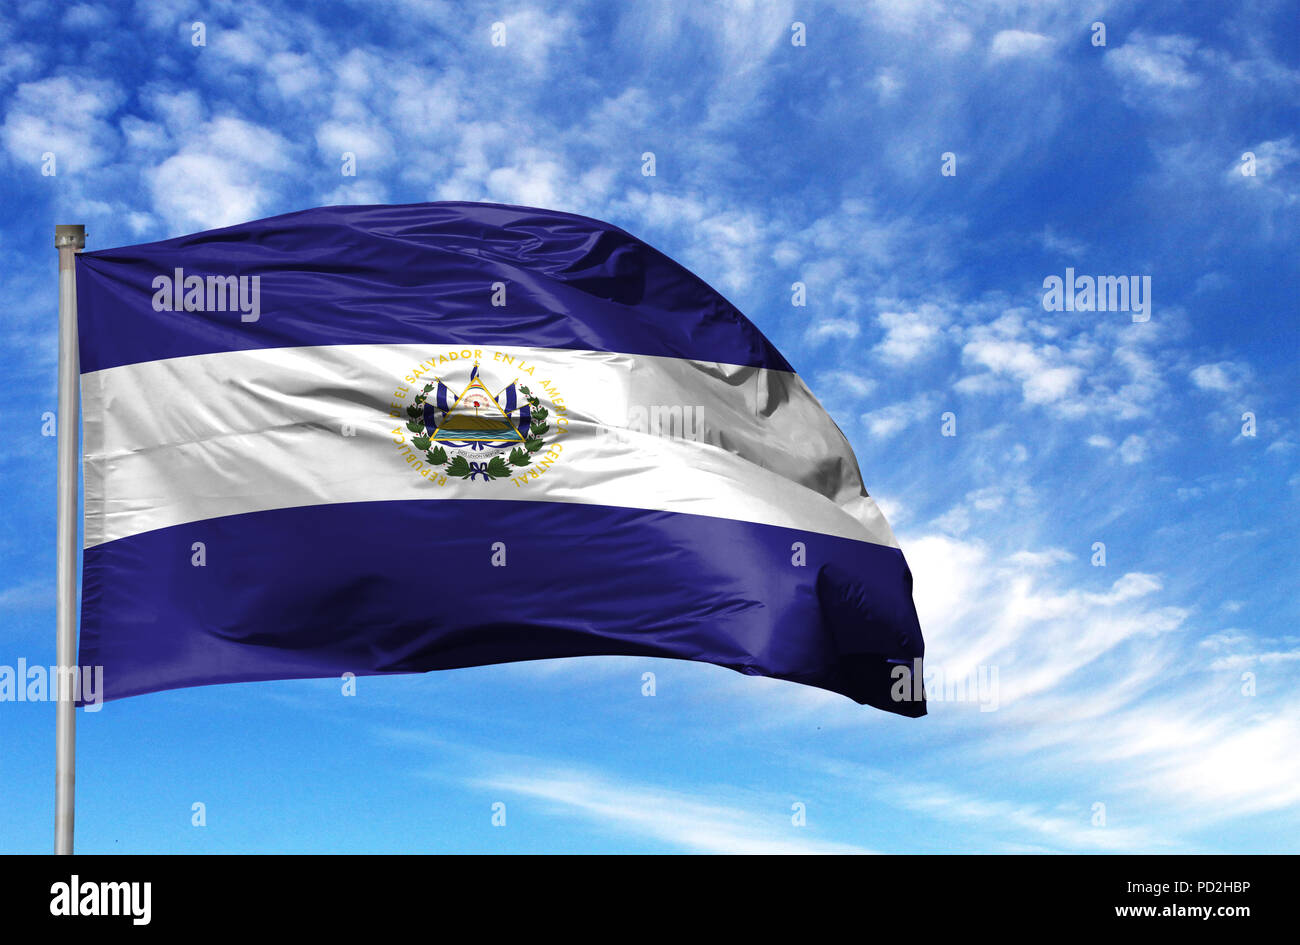 National flag of El Salvador on a flagpole in front of blue sky. - Stock Image